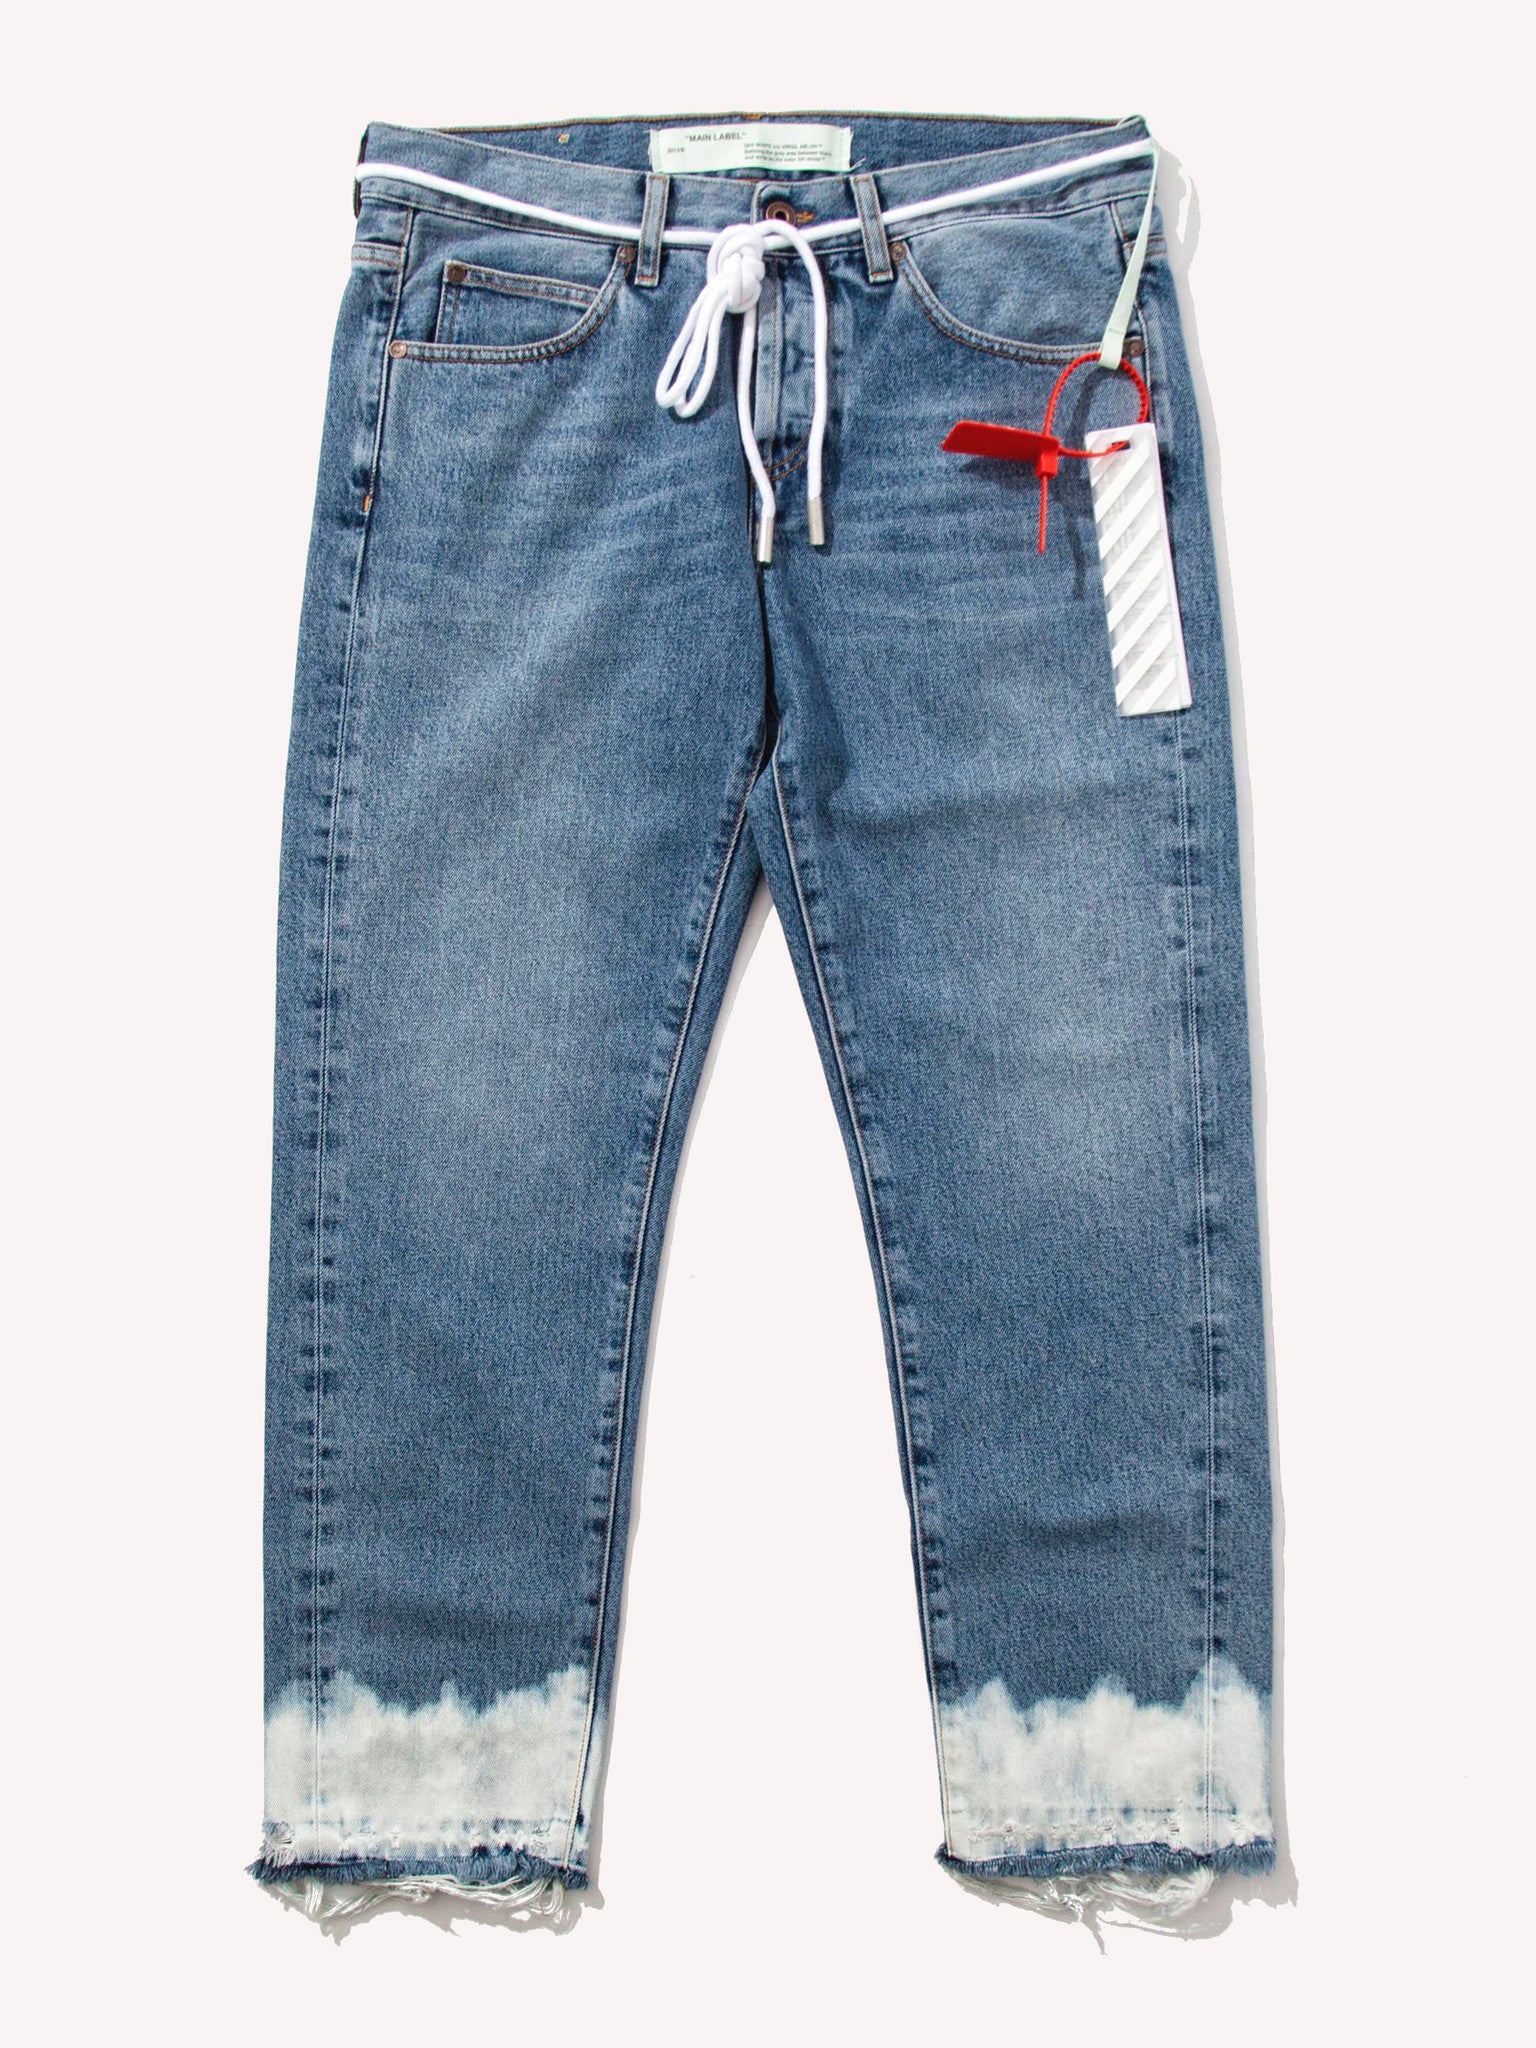 29 Crop 5 Pockets Bottom Bleach VTG Denim 1